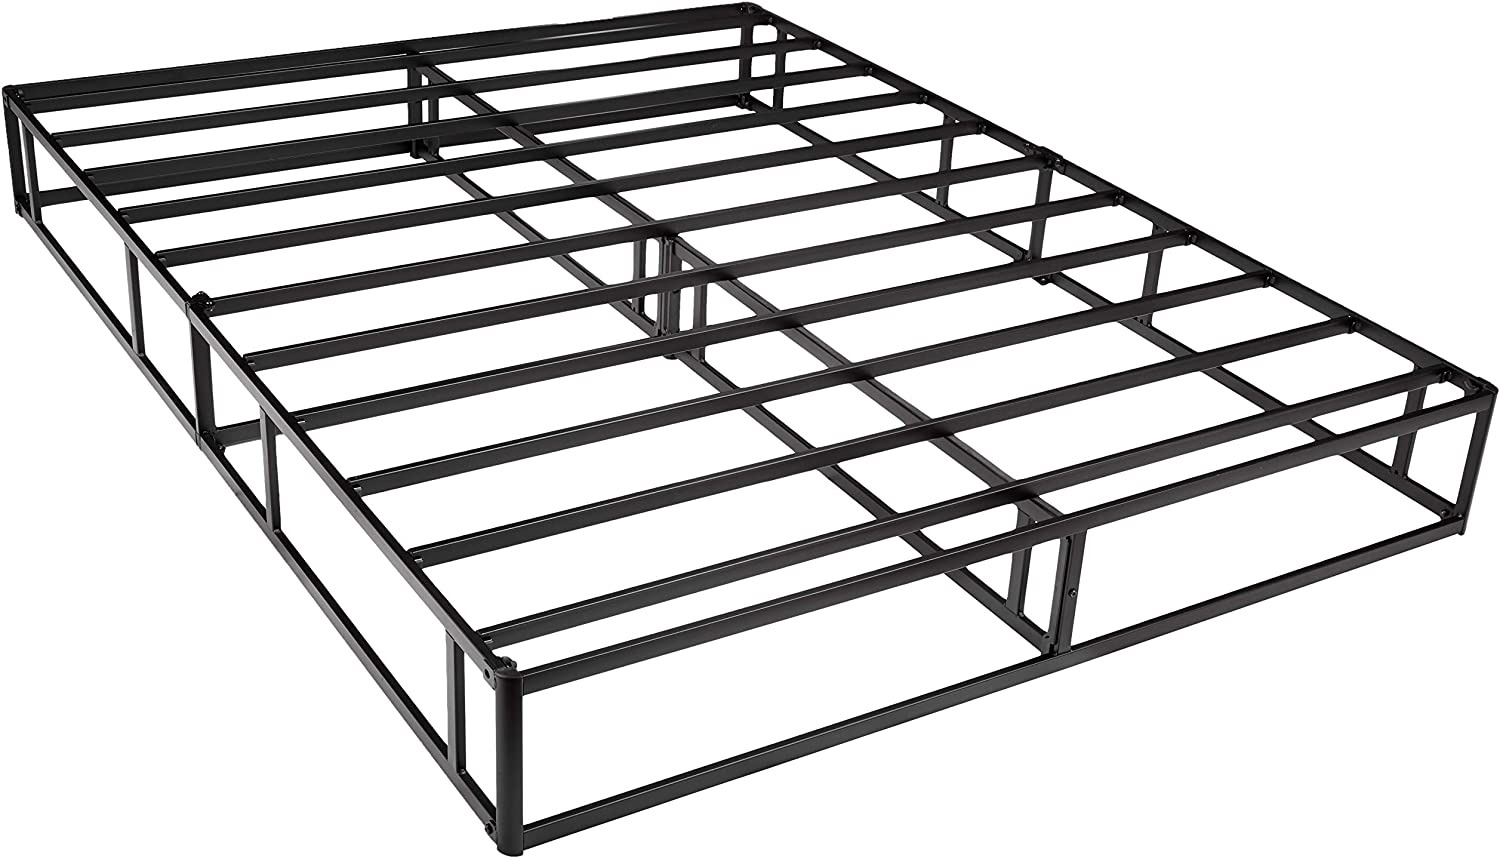 AmazonBasics Mattress Foundation Smart Box Spring for Queen Size Bed, Tool-Free Easy Assembly – 9-Inch, Queen